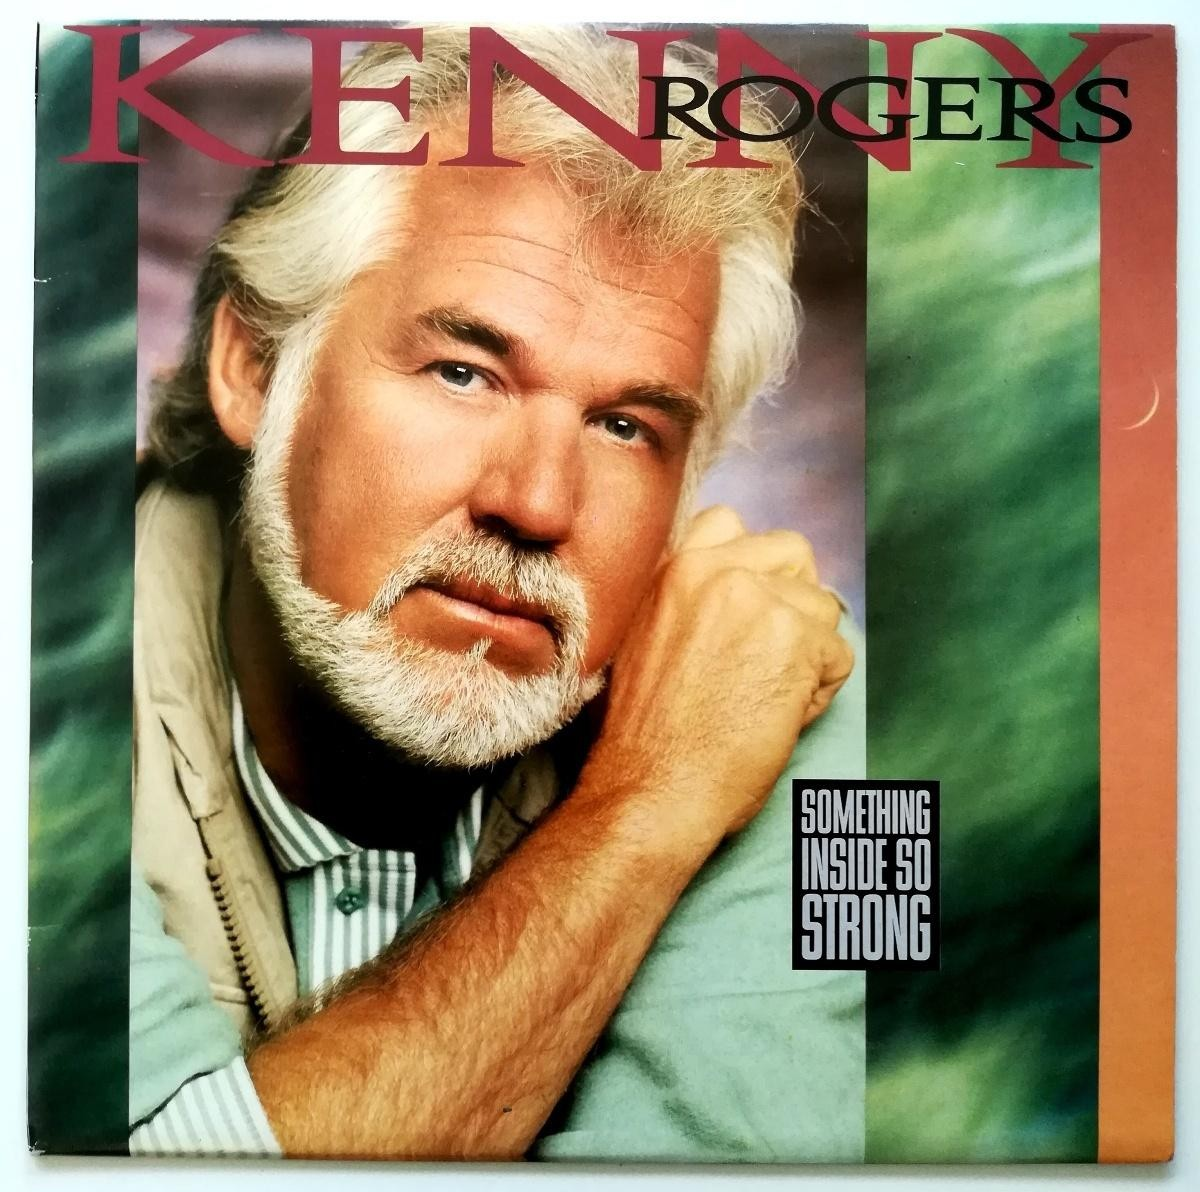 Rogers Kenny - Something Inside So Strong